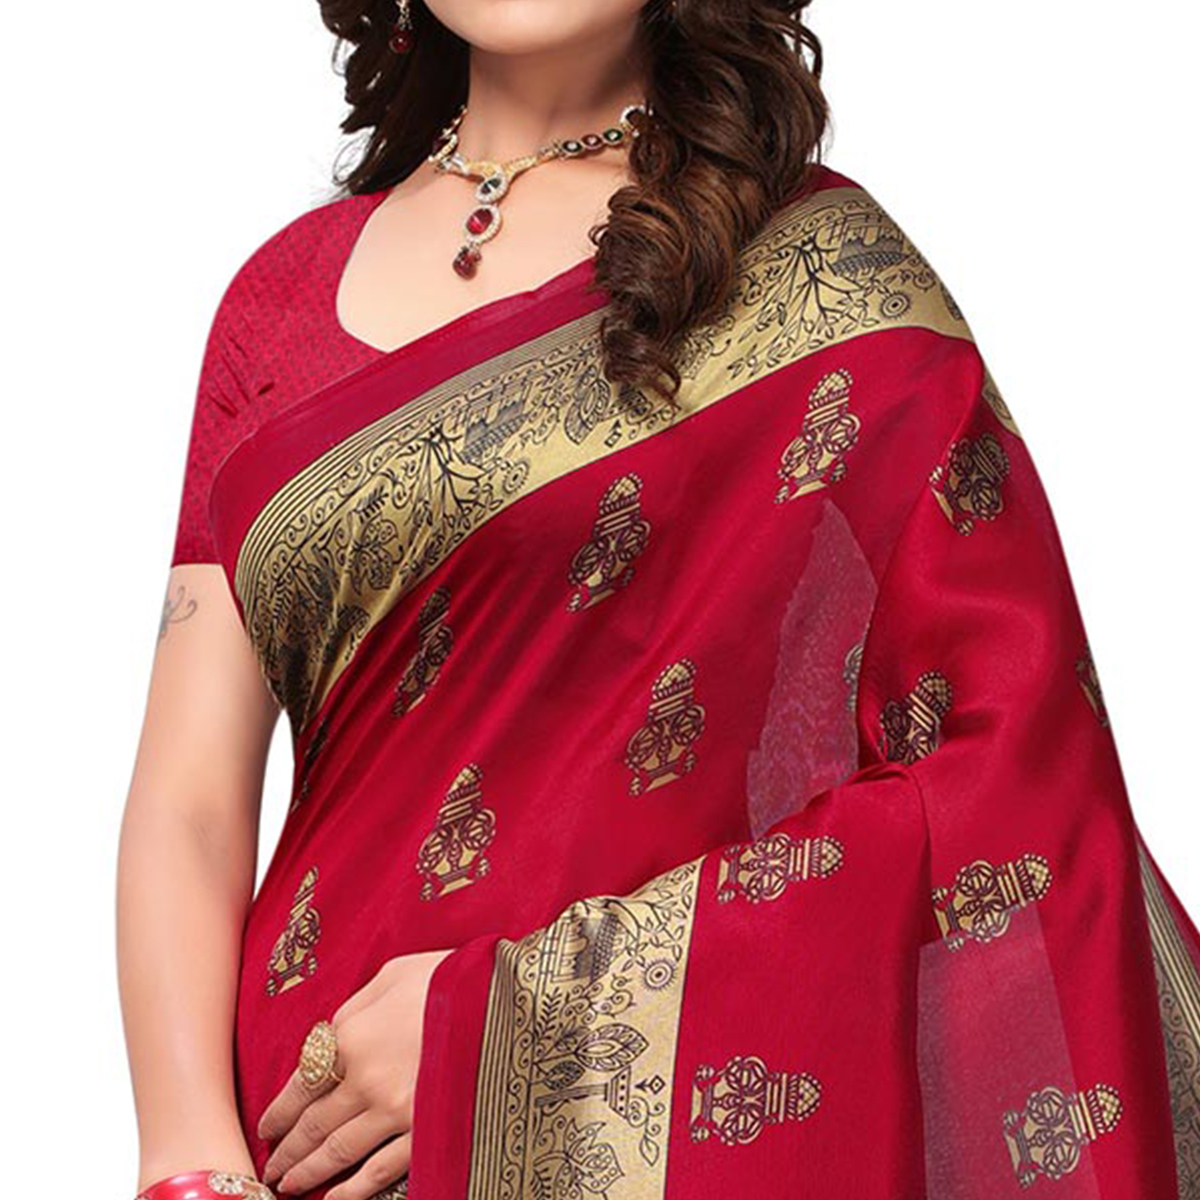 Mesmerising Maroon Colored Festive Wear Printed Mysore Art Silk Saree